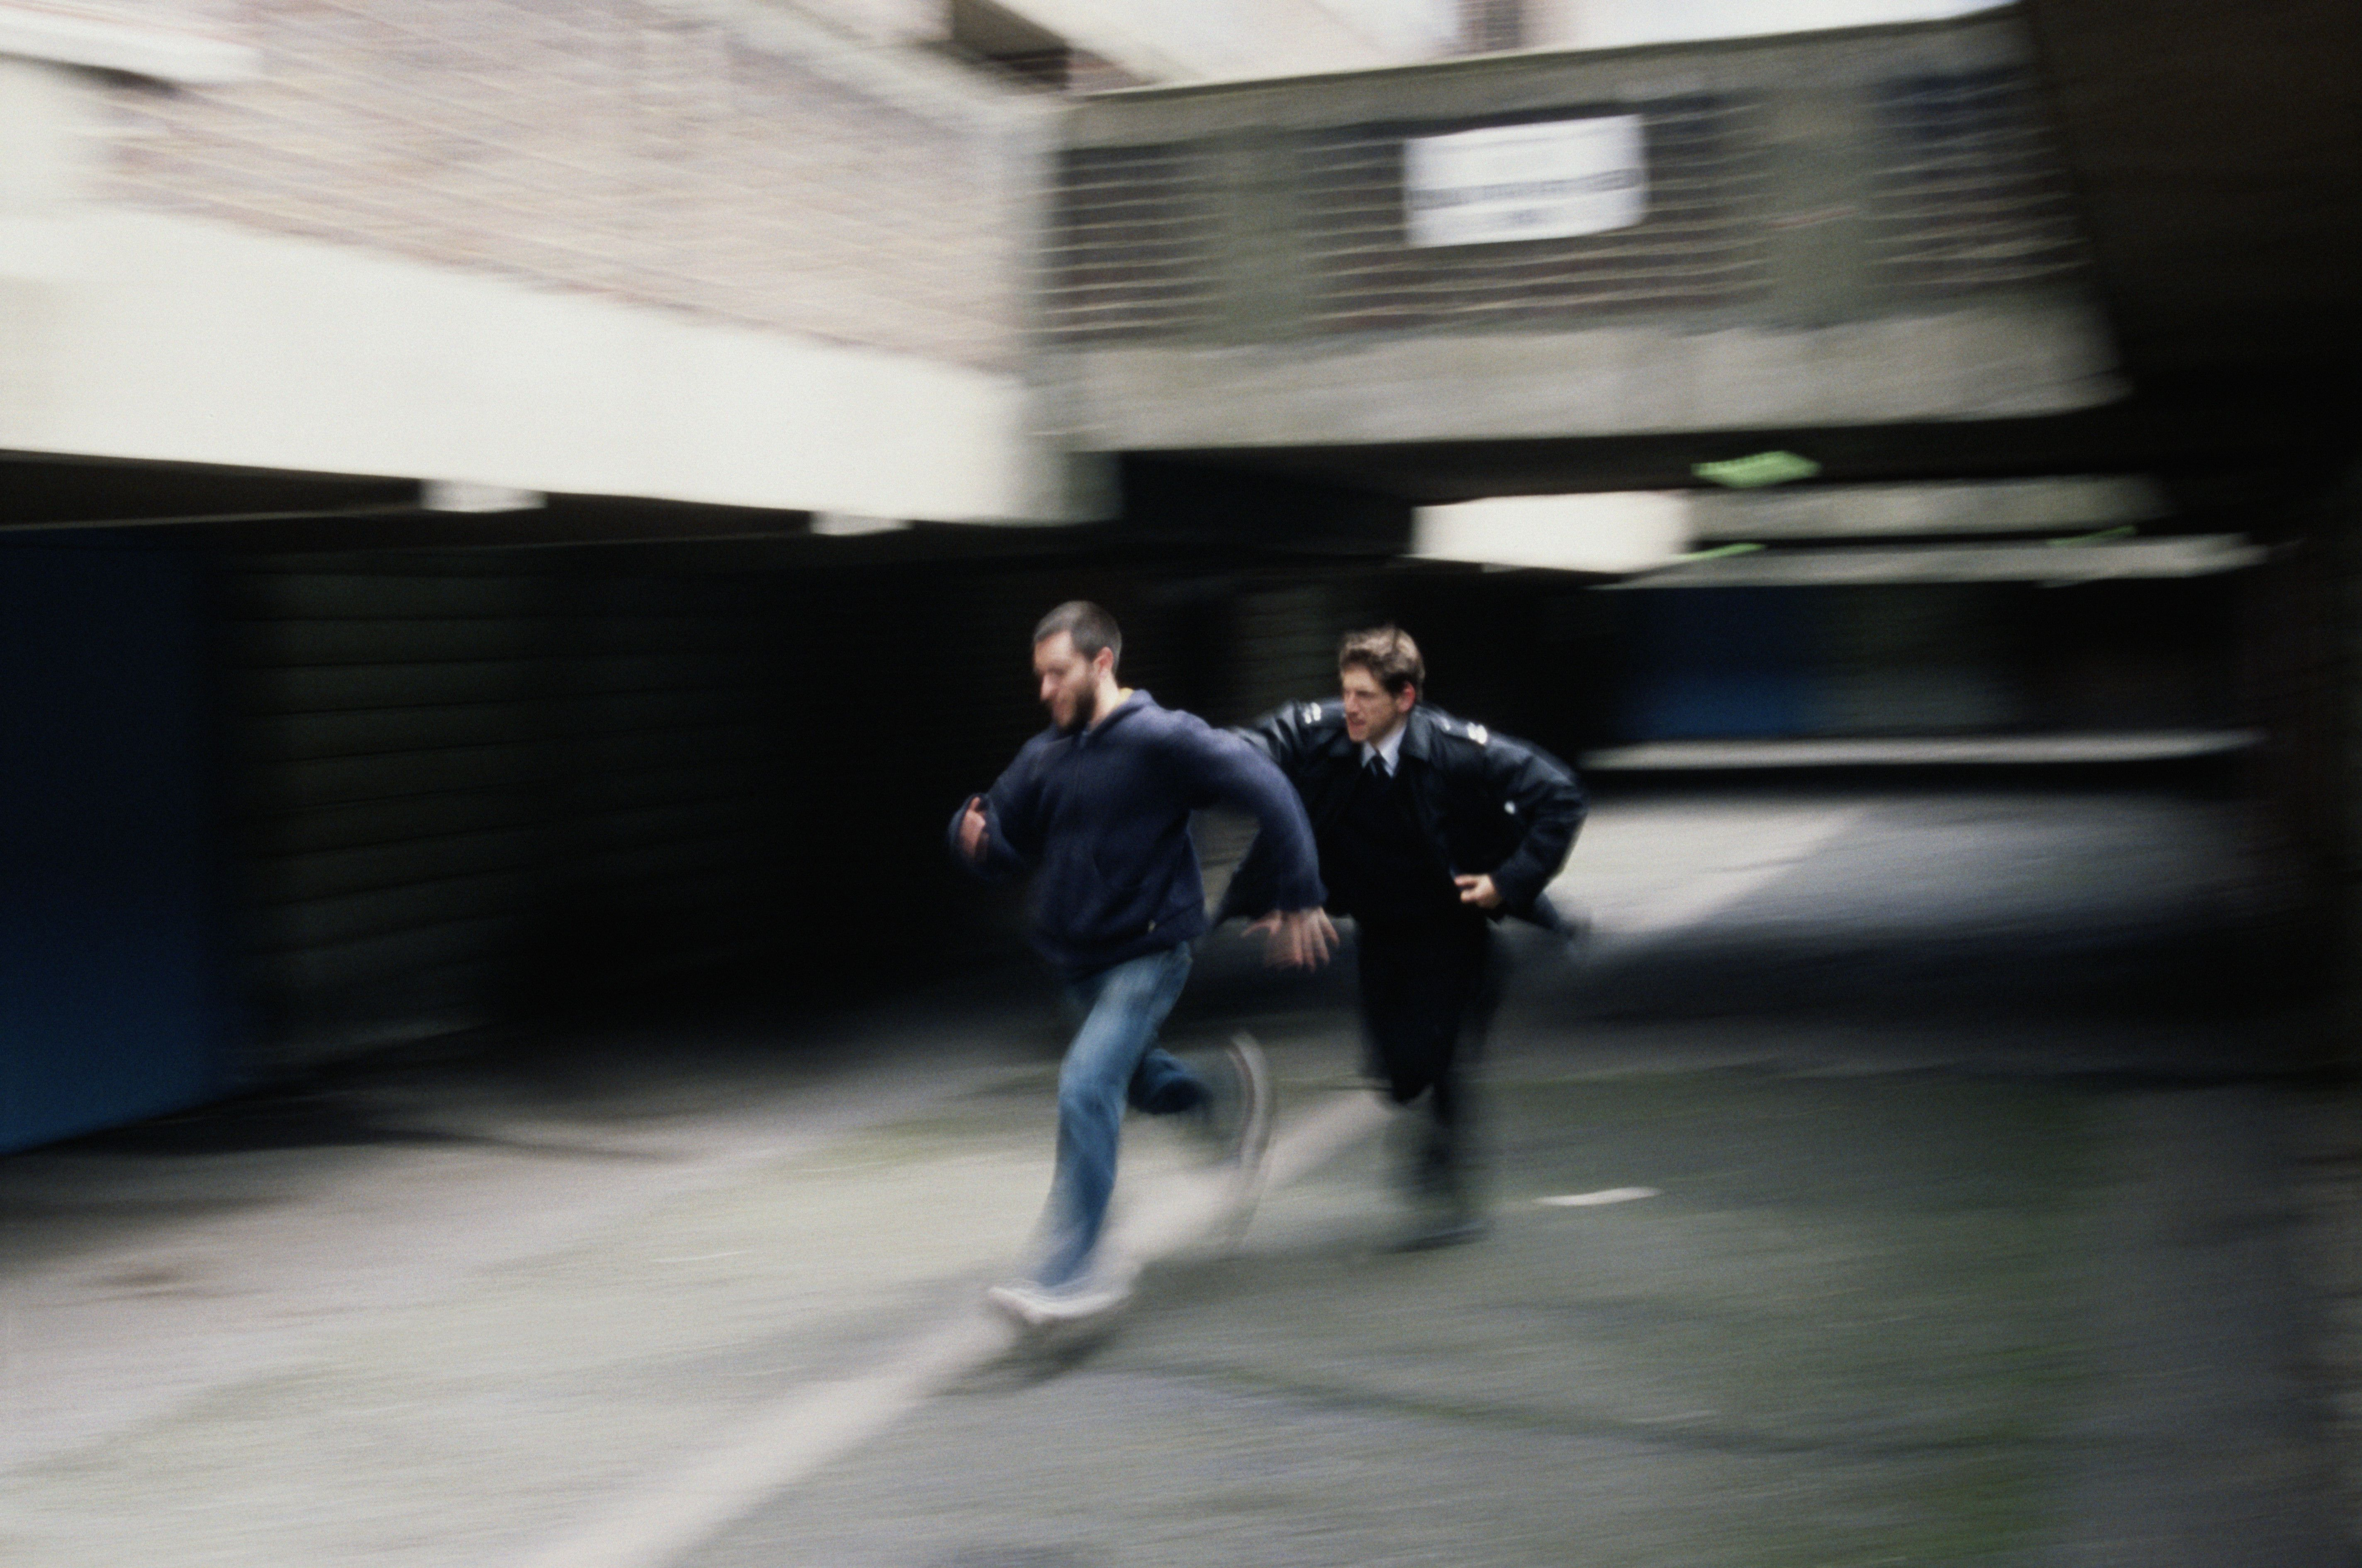 Policeman chasing and reaching for man (blurred motion)